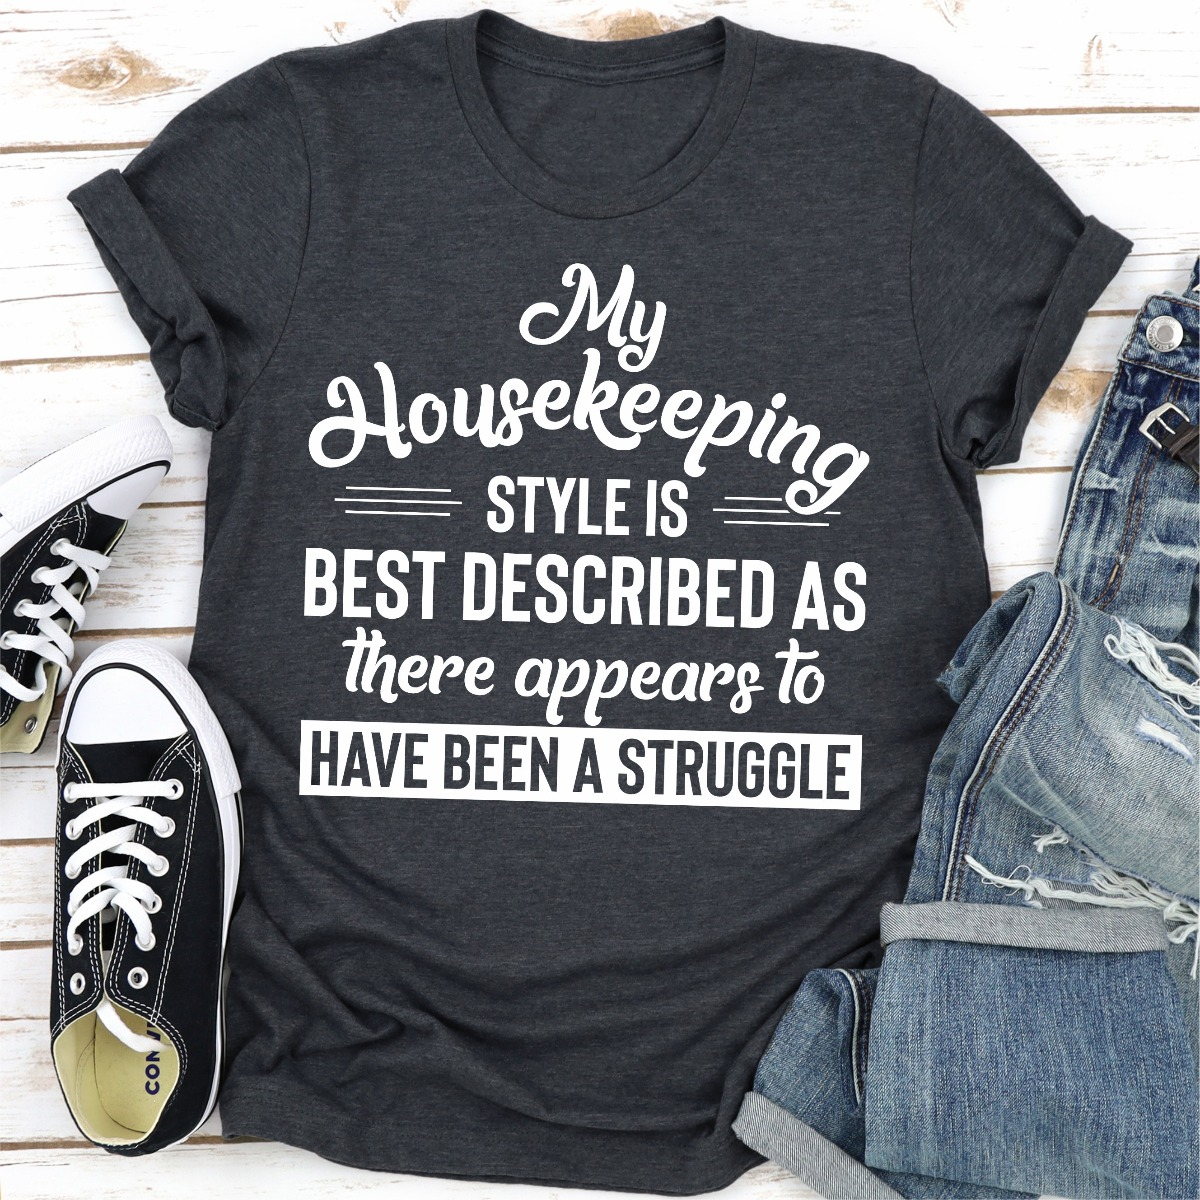 """My Housekeeping Style Is Best Described As """"There Appears To Have Been A Struggle"""" (Dark Heather / 3Xl)"""